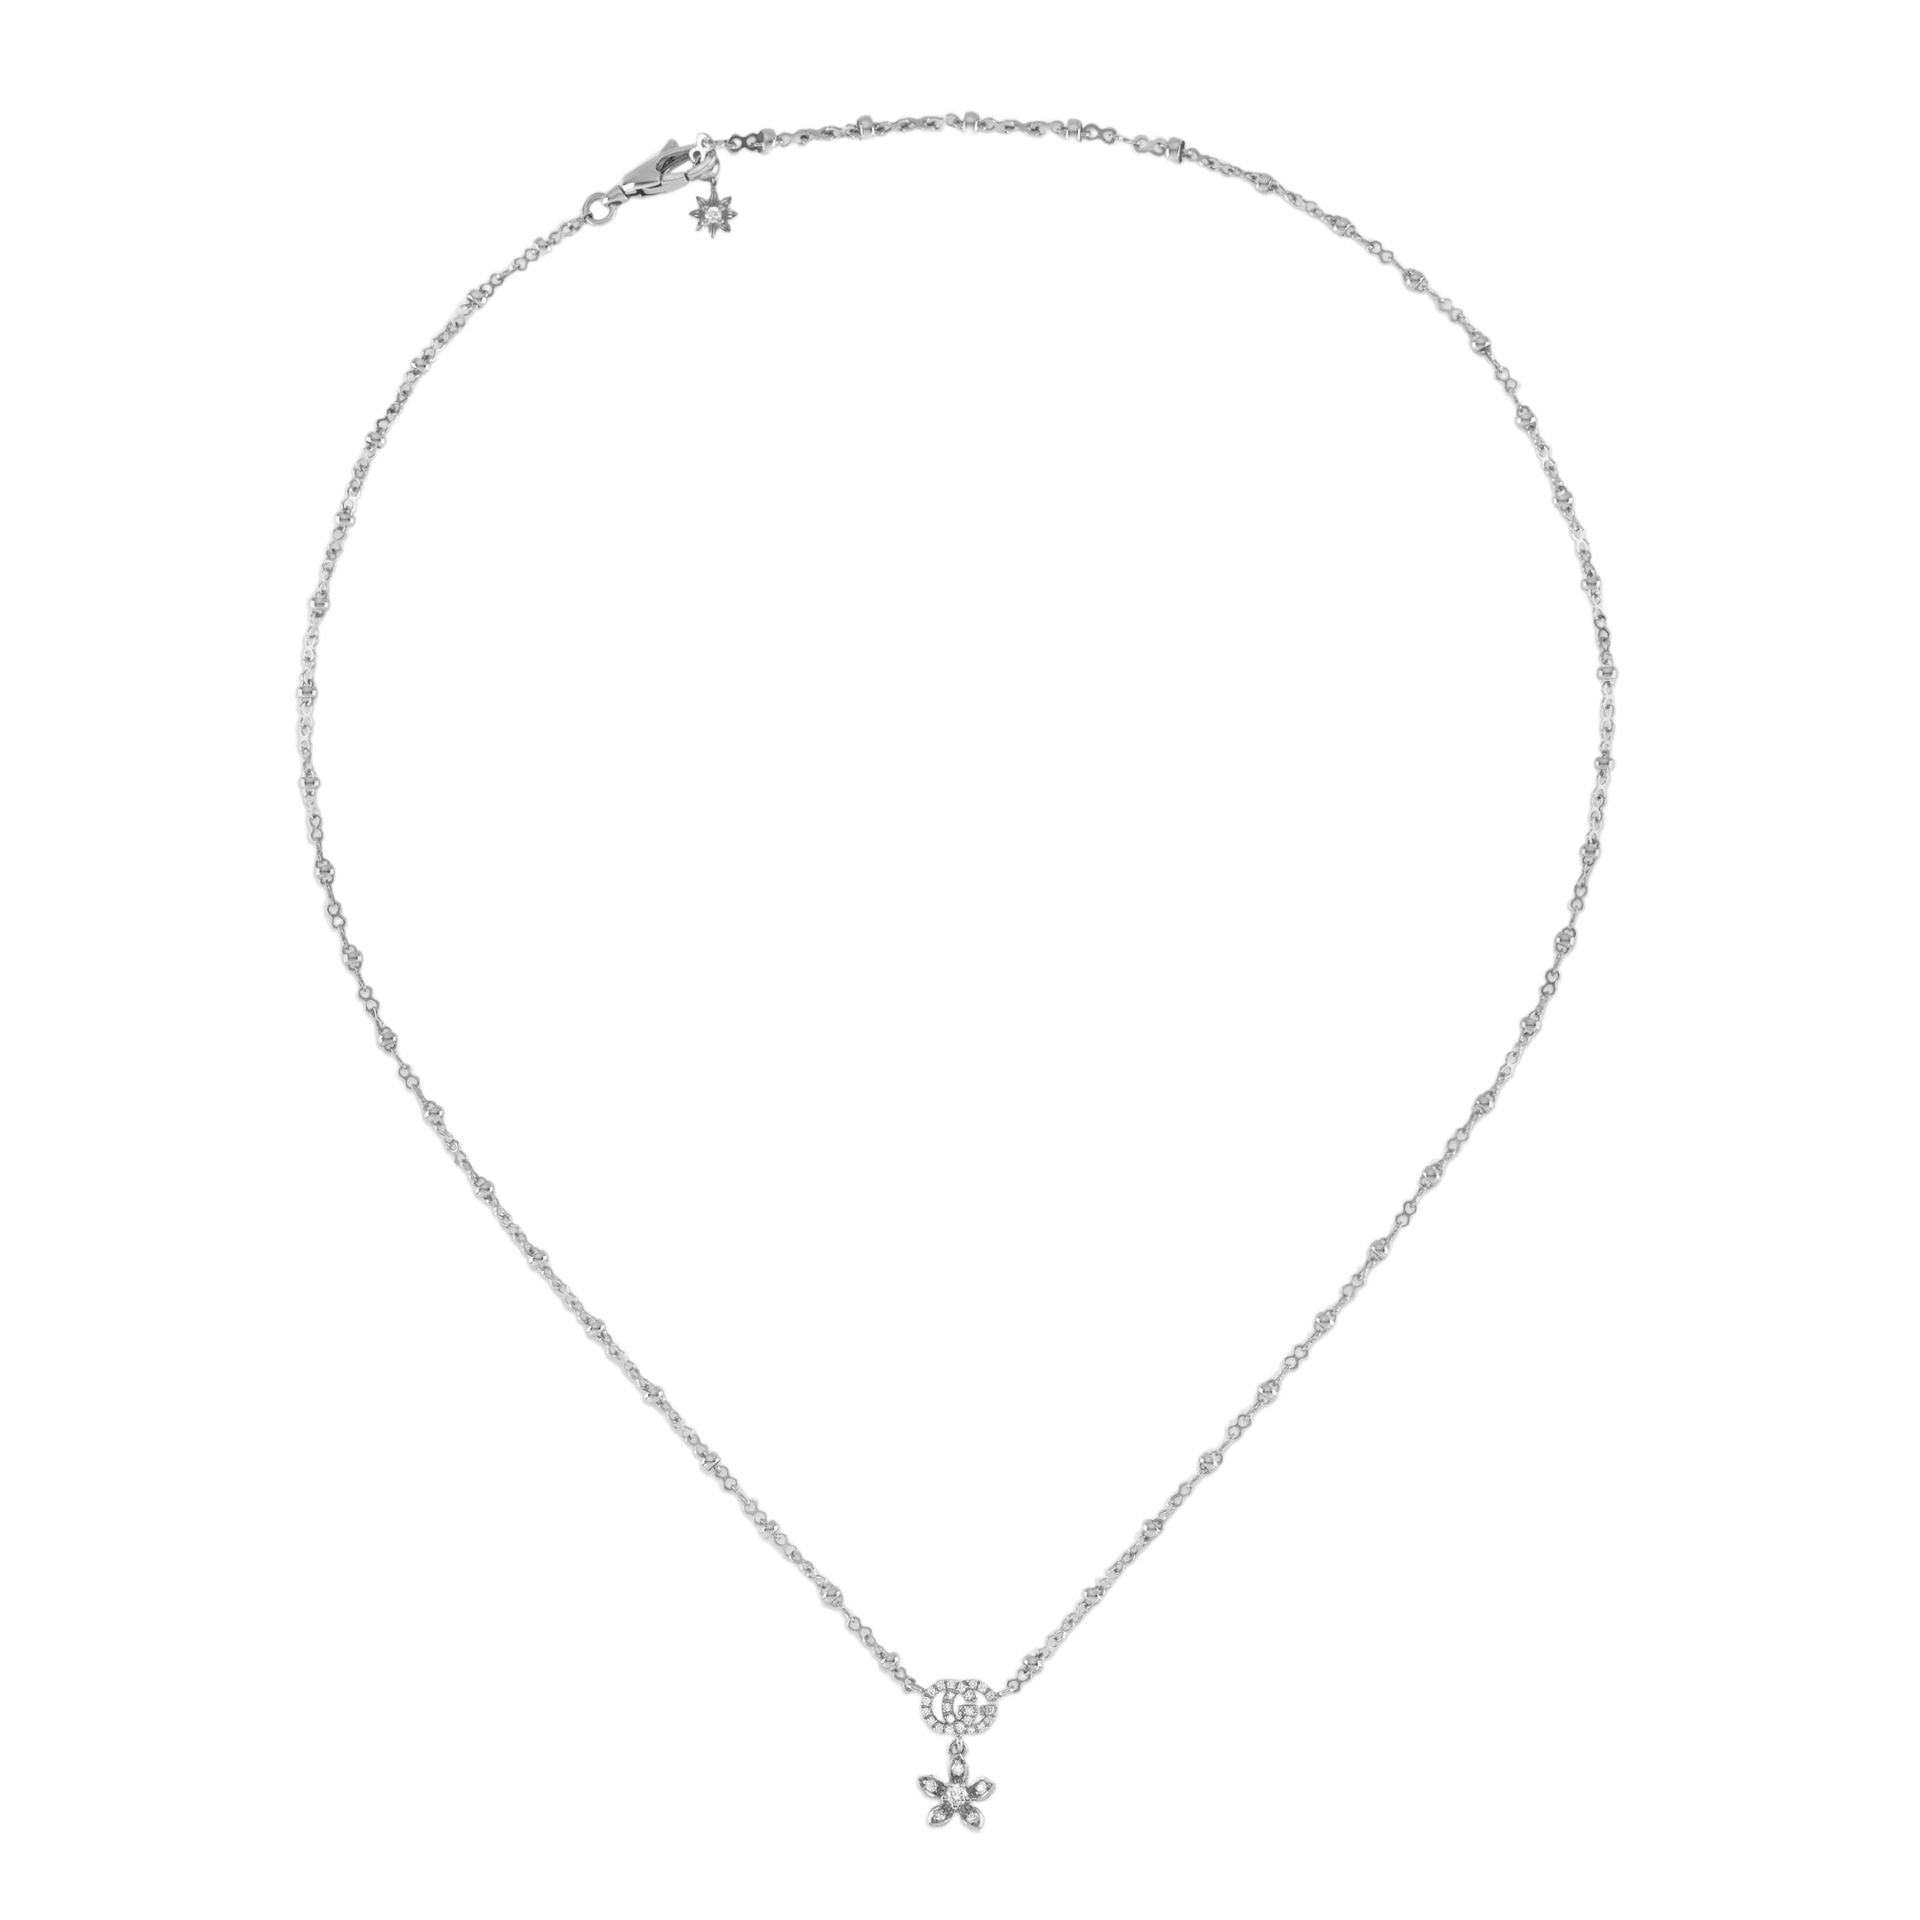 Gucci Flora Necklace in 18k White Gold and Diamonds - Orsini Jewellers NZ